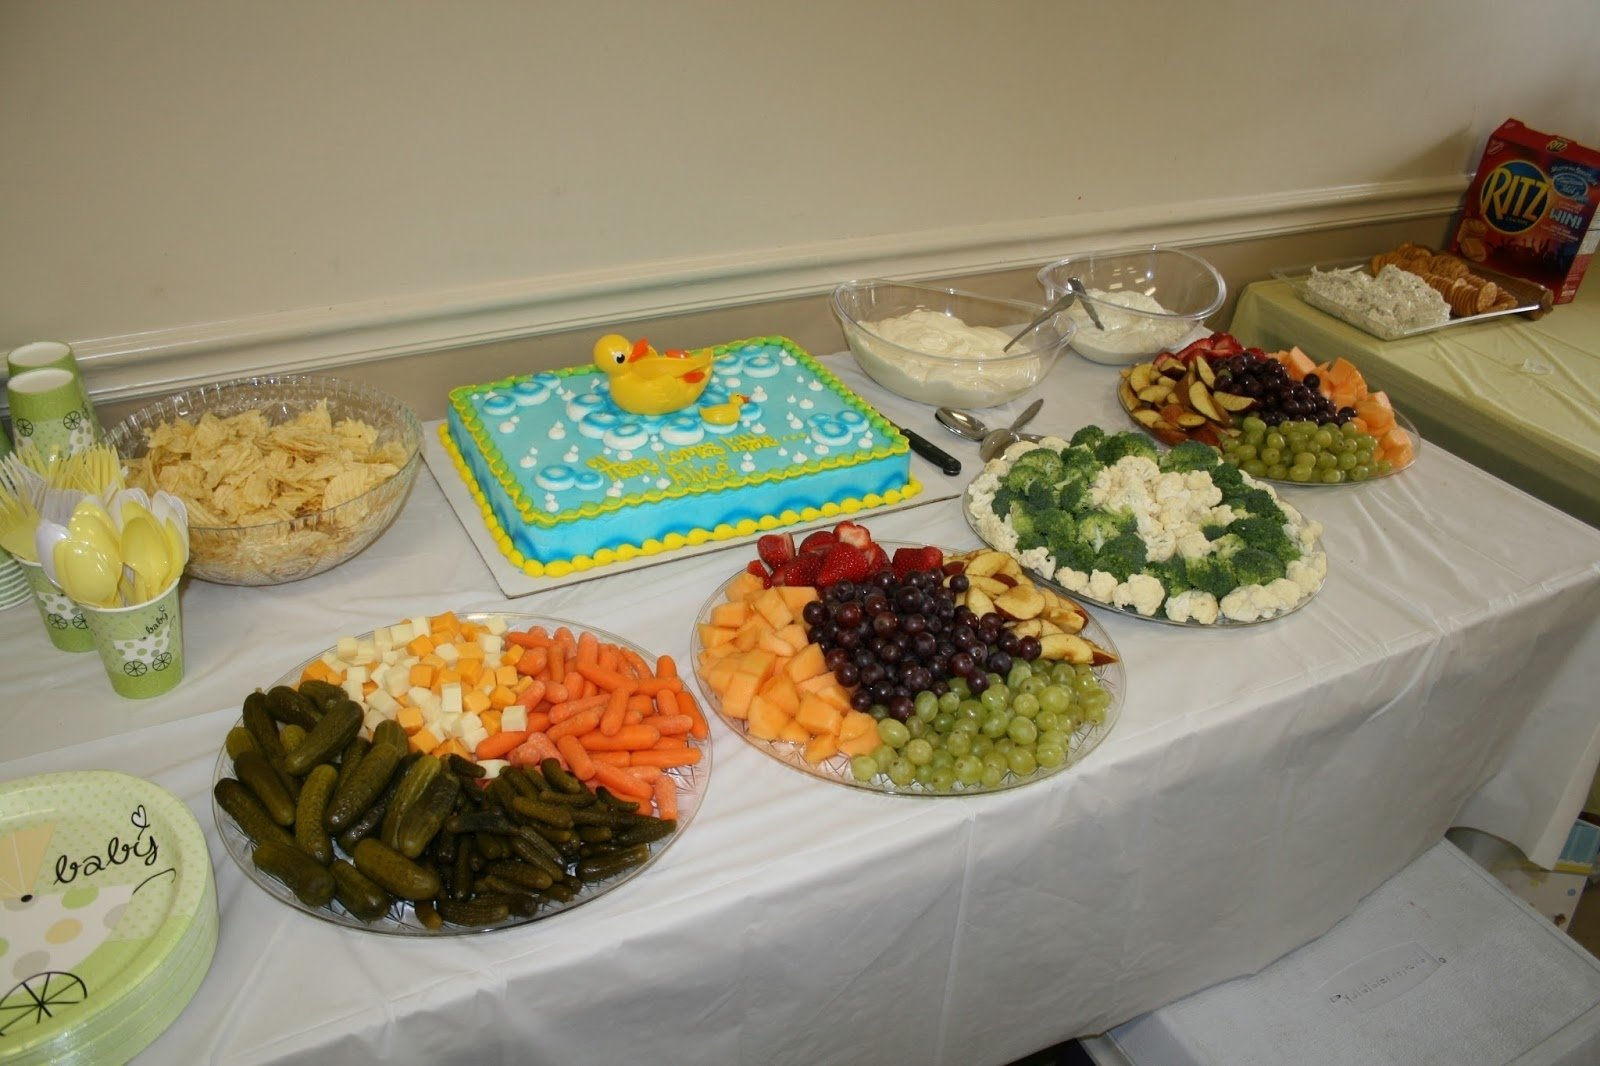 10 Attractive Baby Shower Lunch Menu Ideas baby shower finger foods recipes menu network easy frightening food 2020